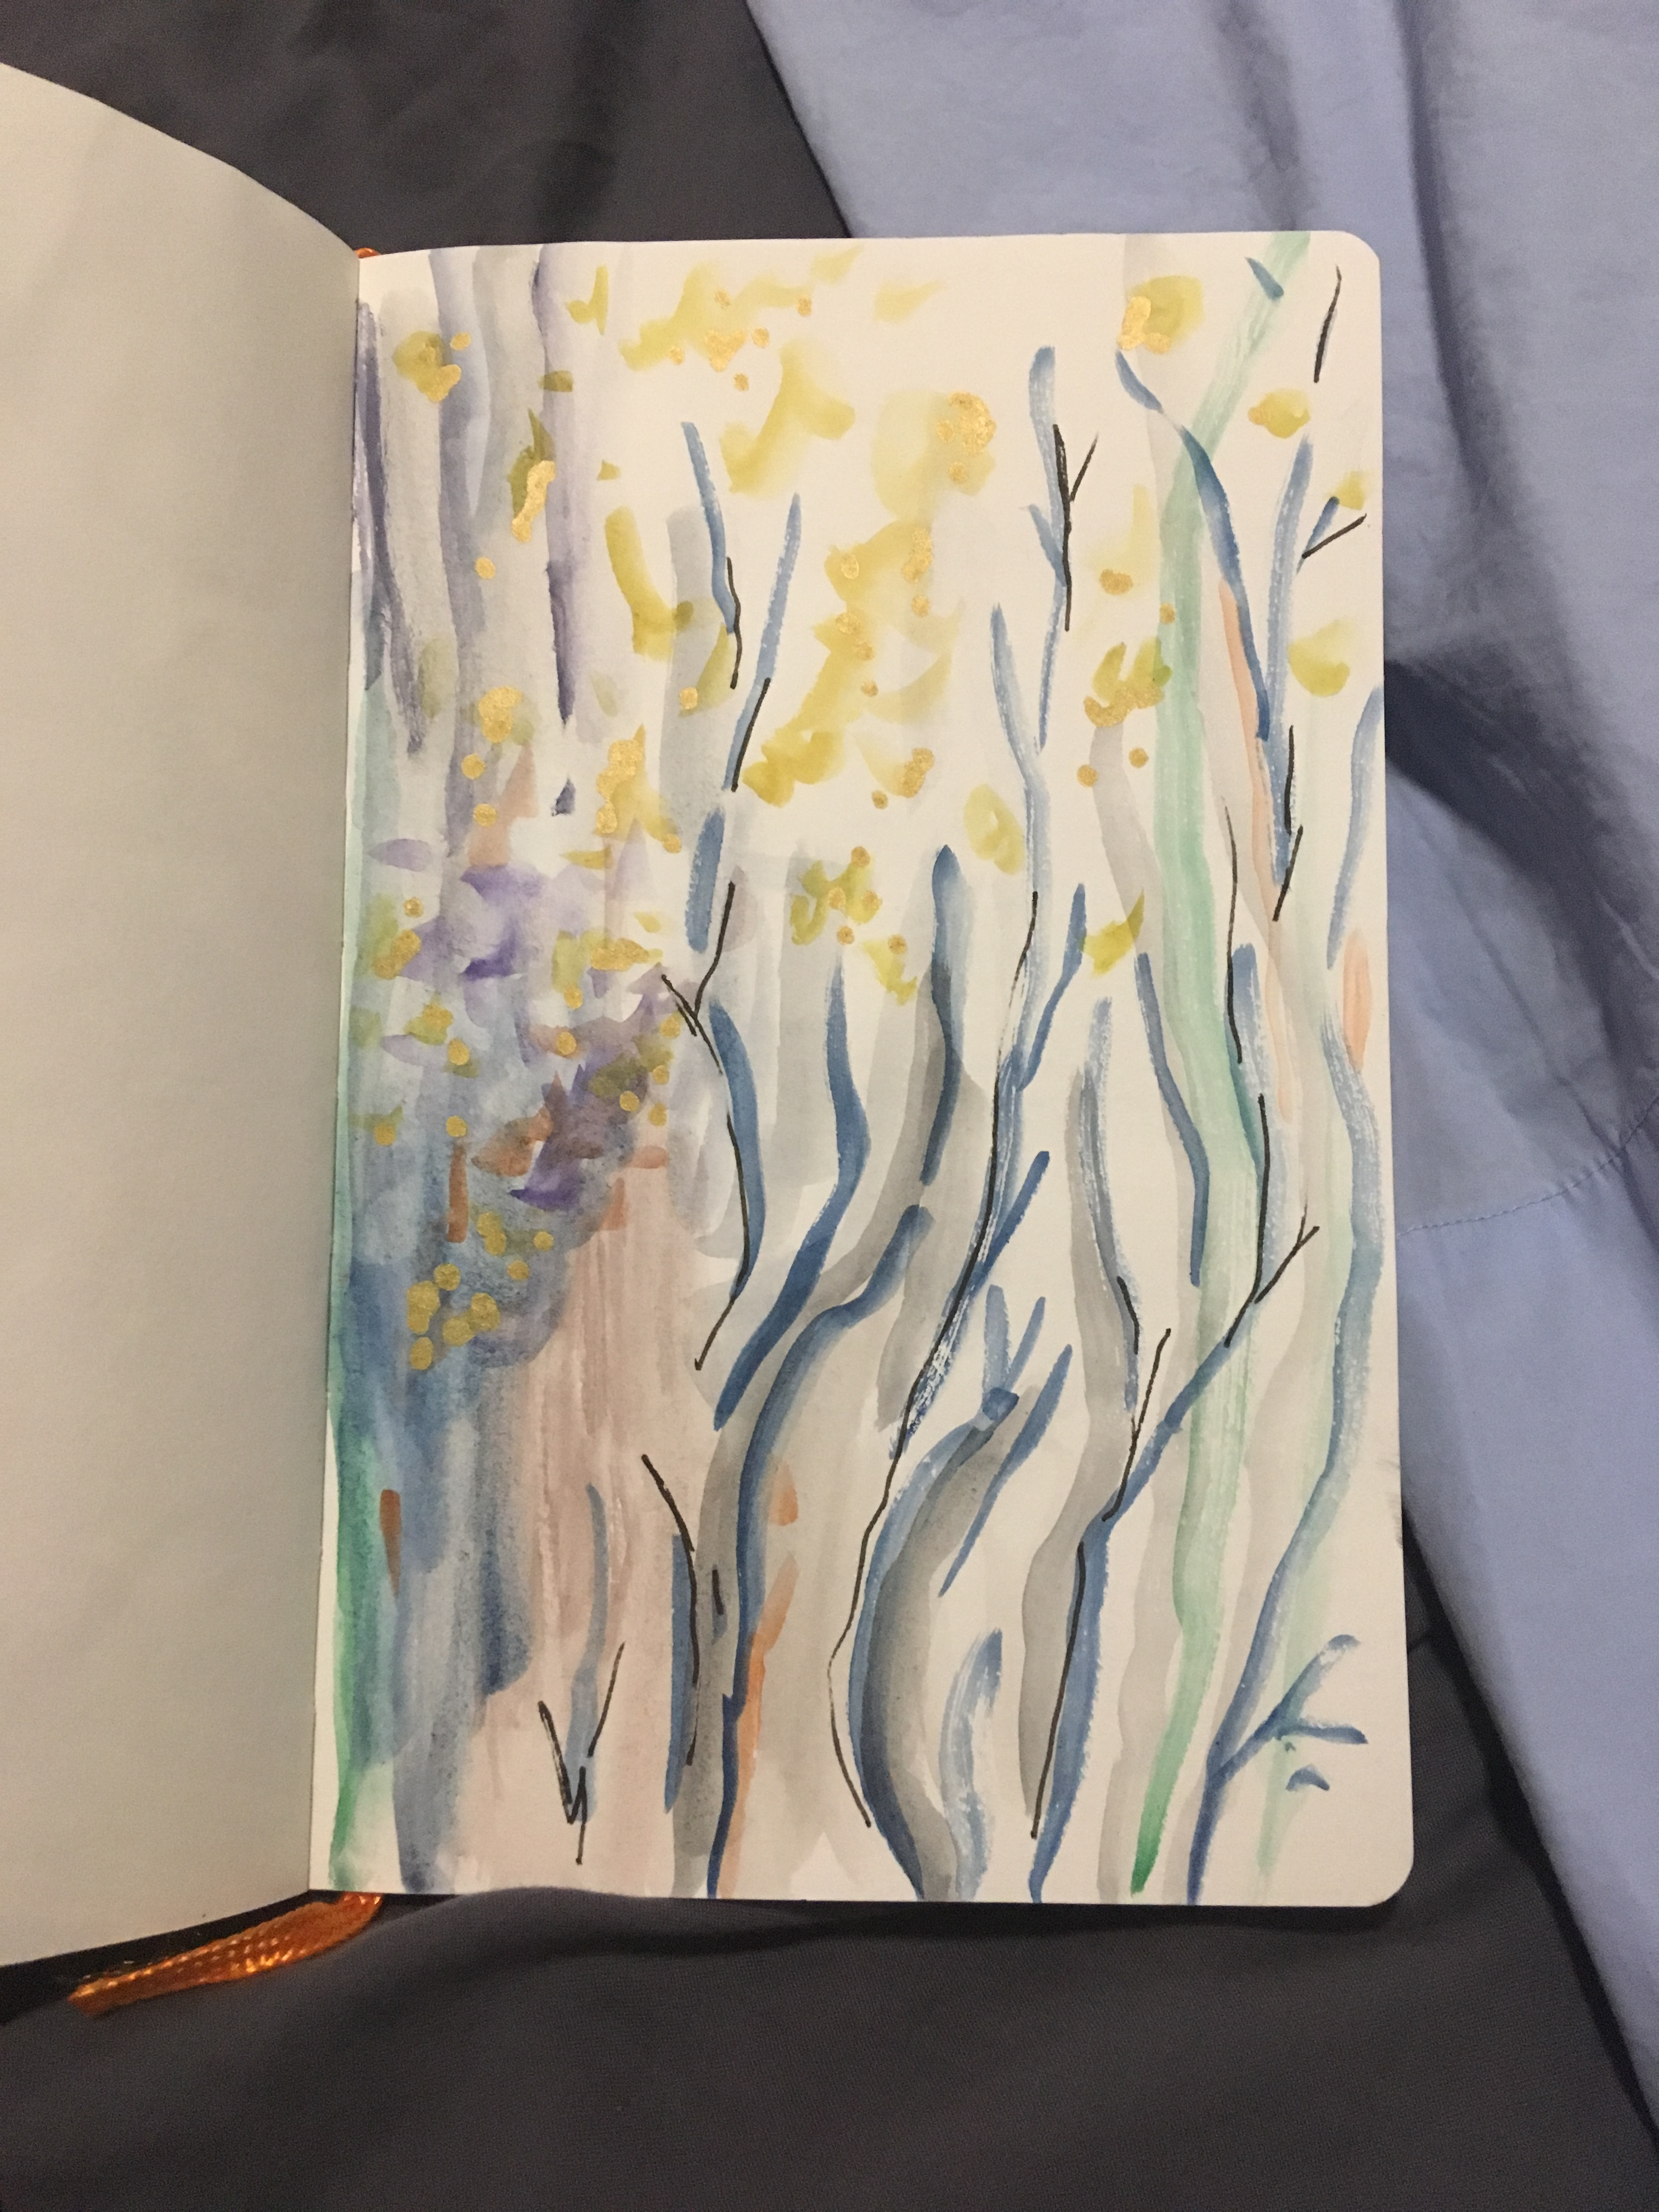 spring 2019 | Lynnette Therese Sauer